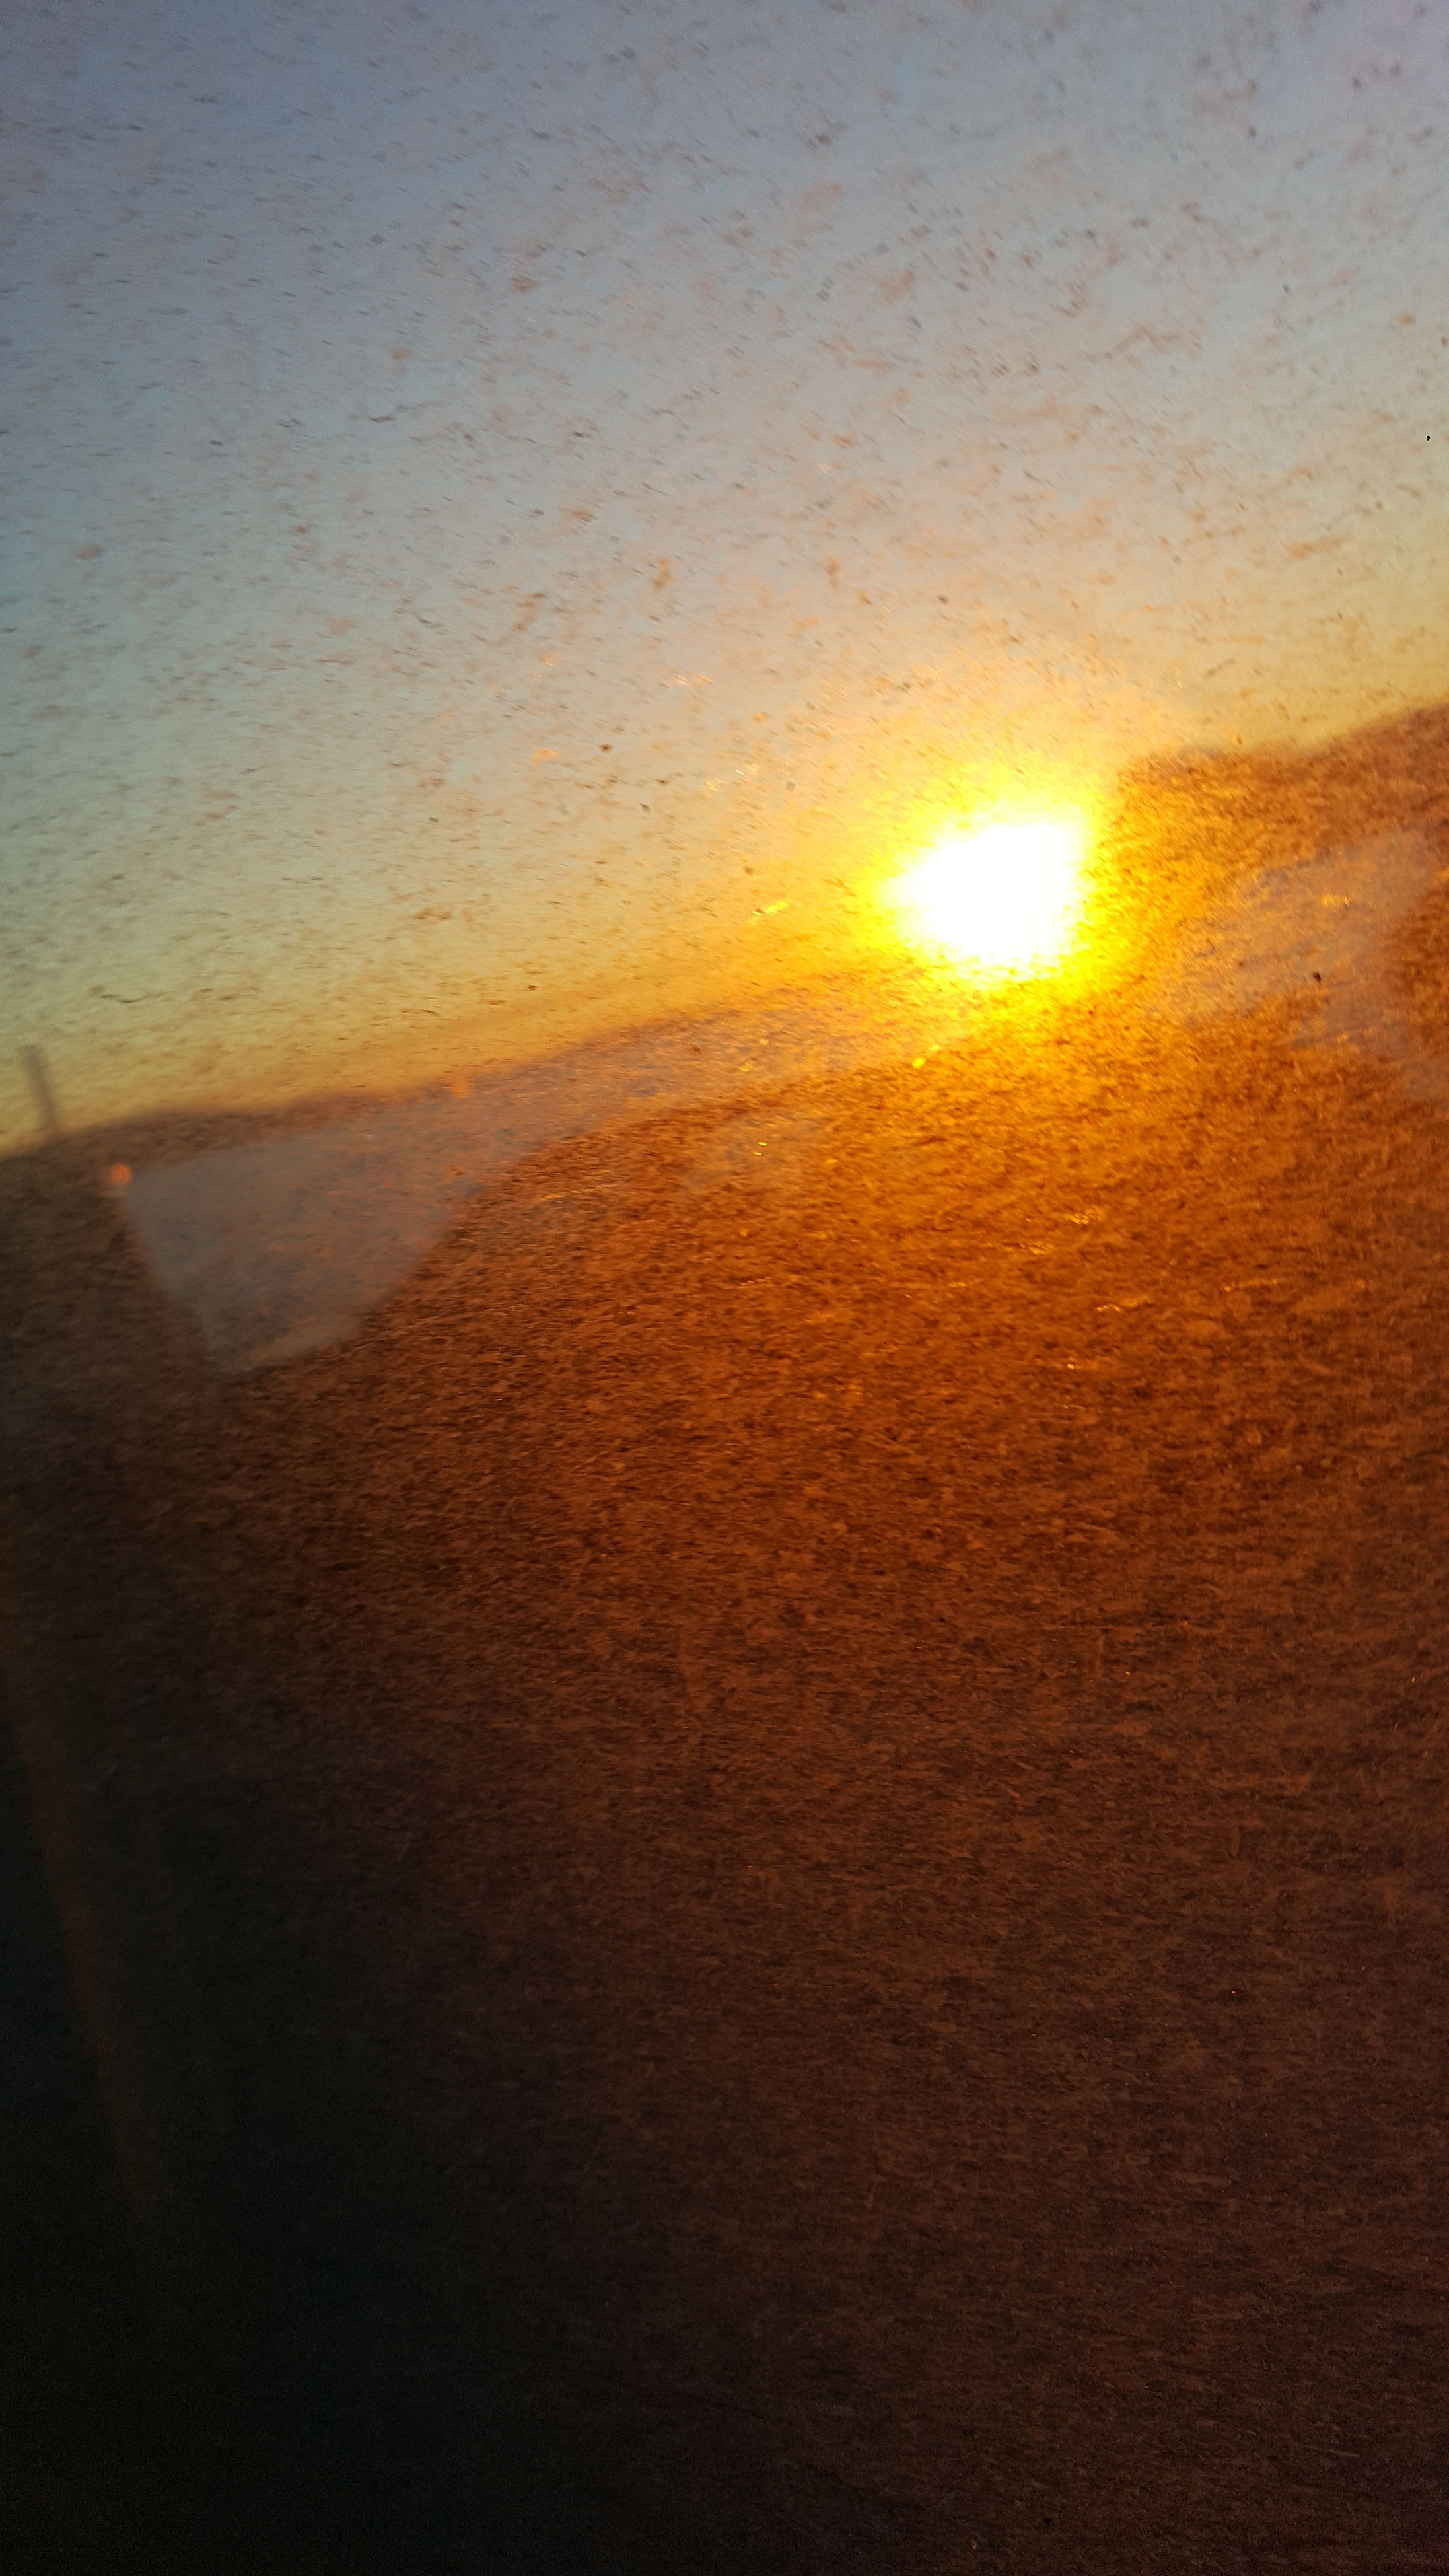 sunset, nature, sun, beauty in nature, sunlight, no people, scenics, sky, outdoors, water, sand, backgrounds, close-up, day